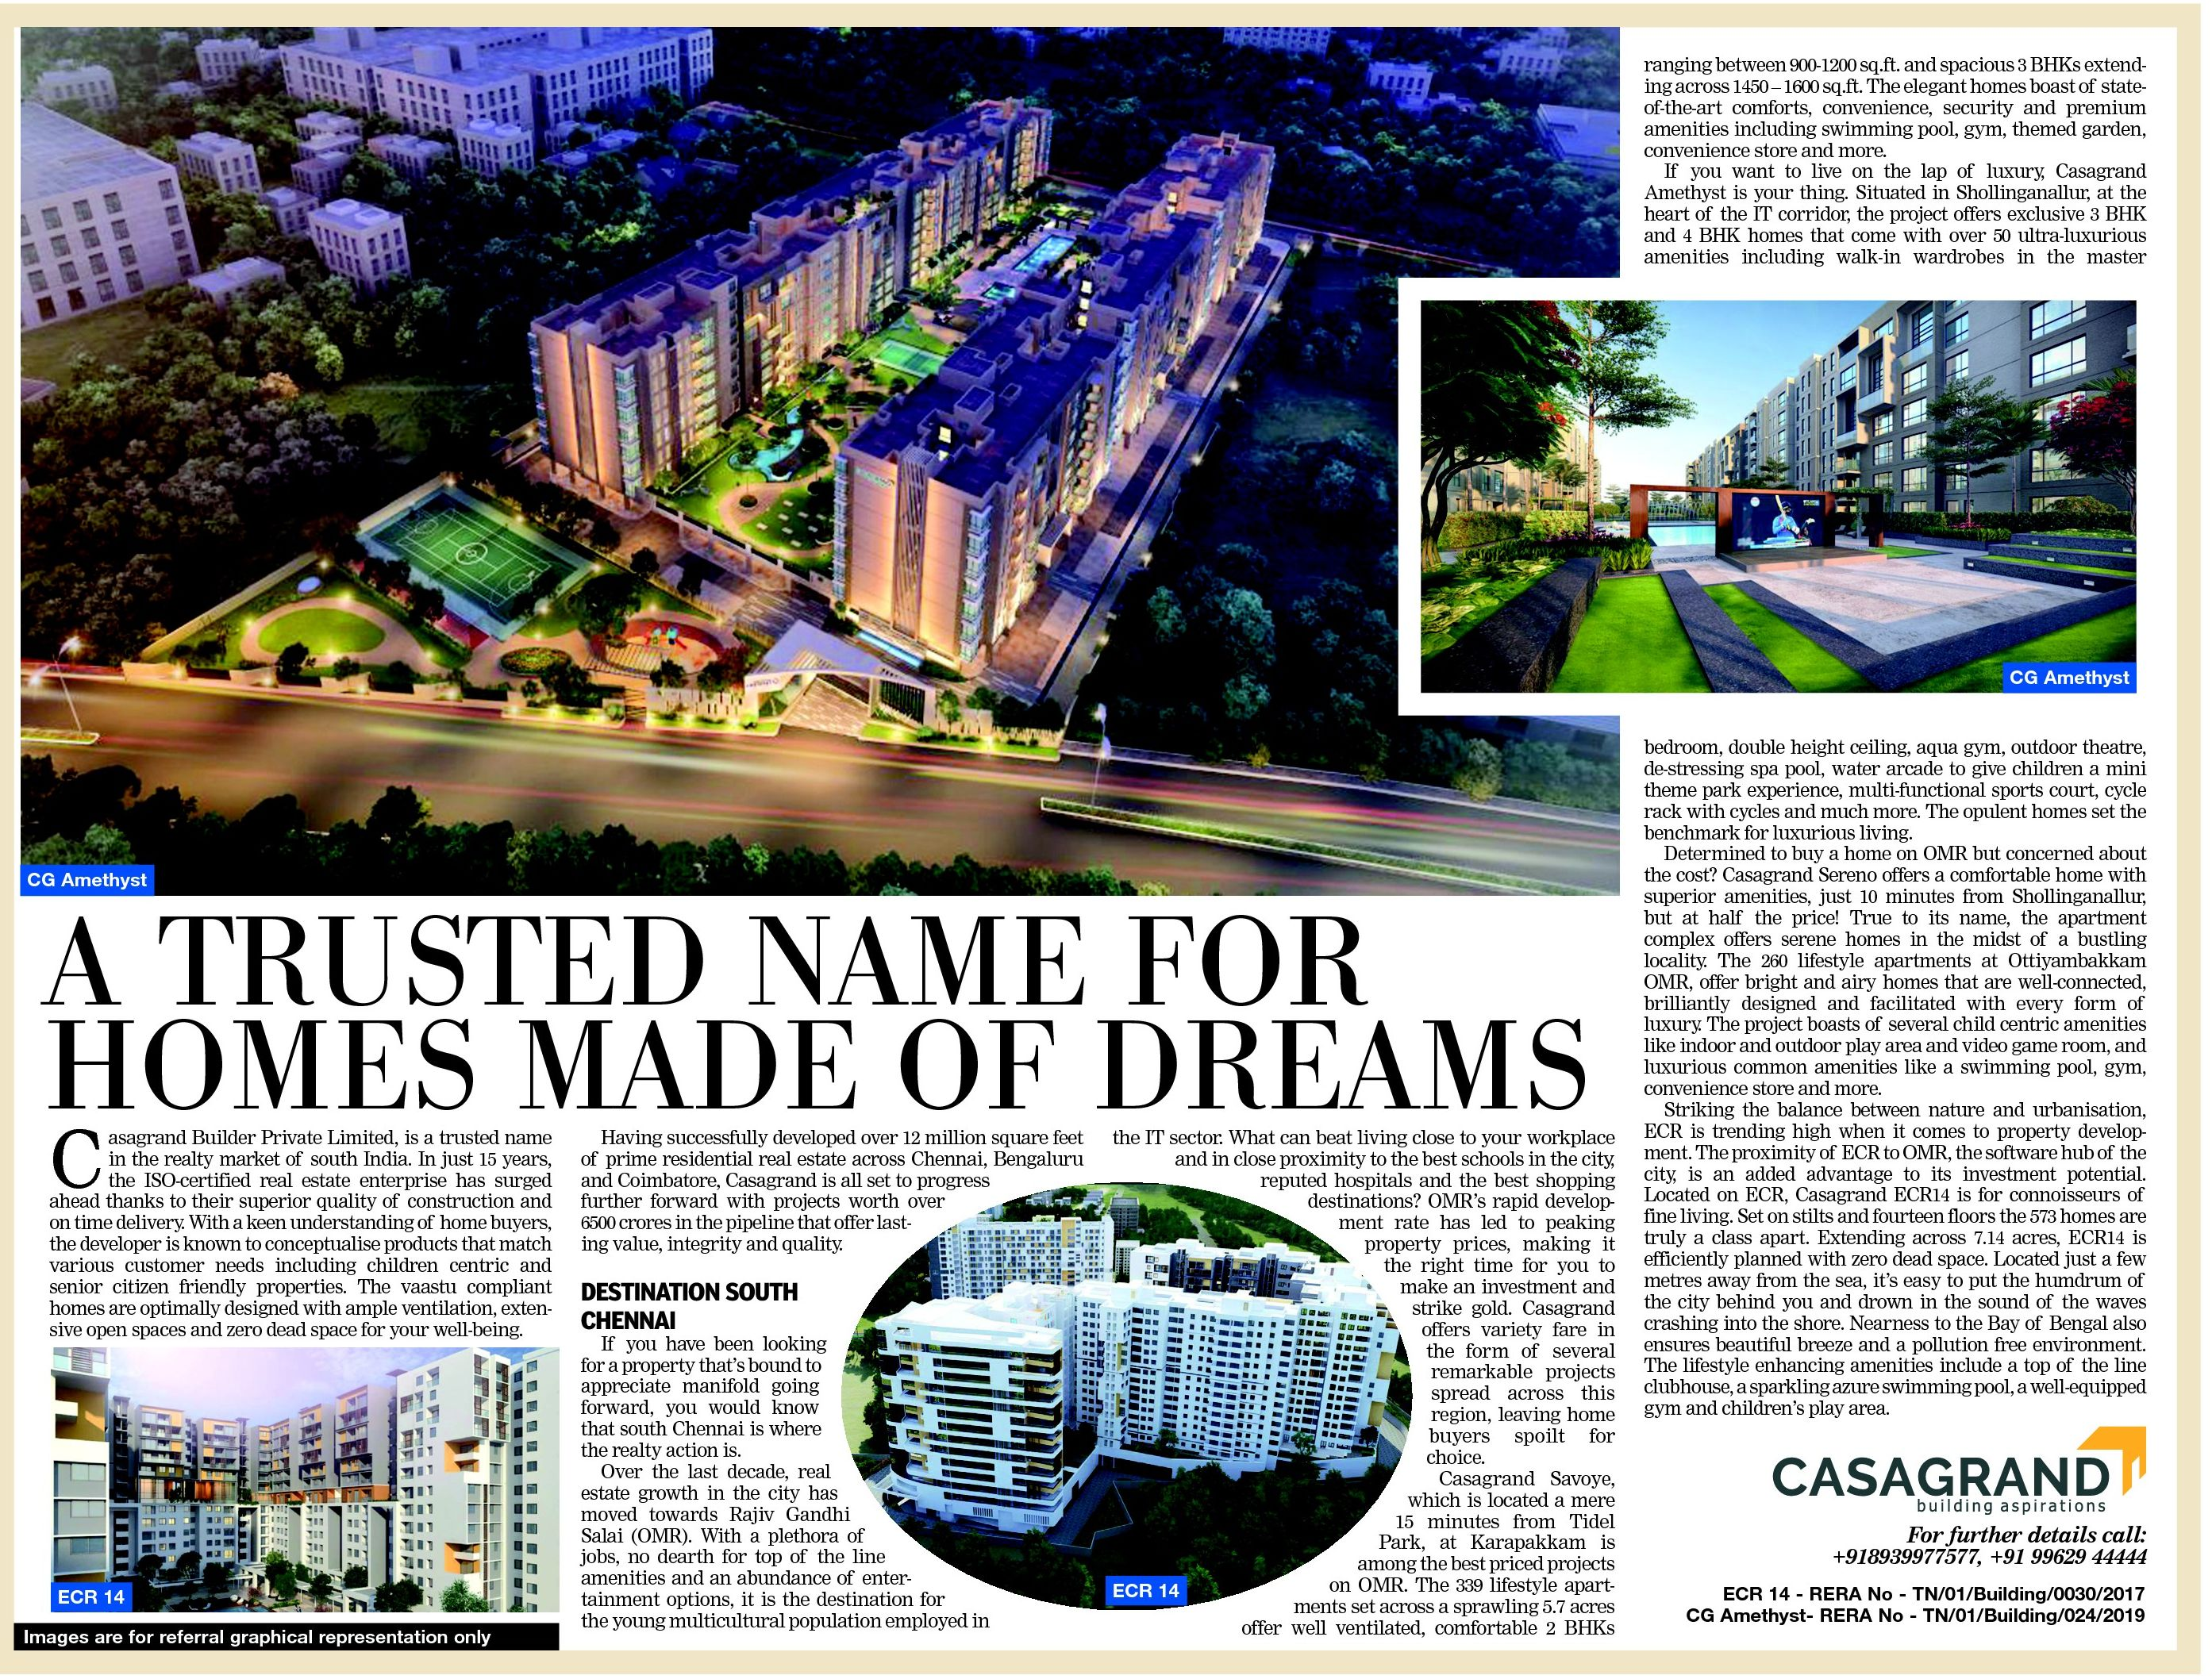 Press Releases by Casagrand - A Leading Real Estate Developer